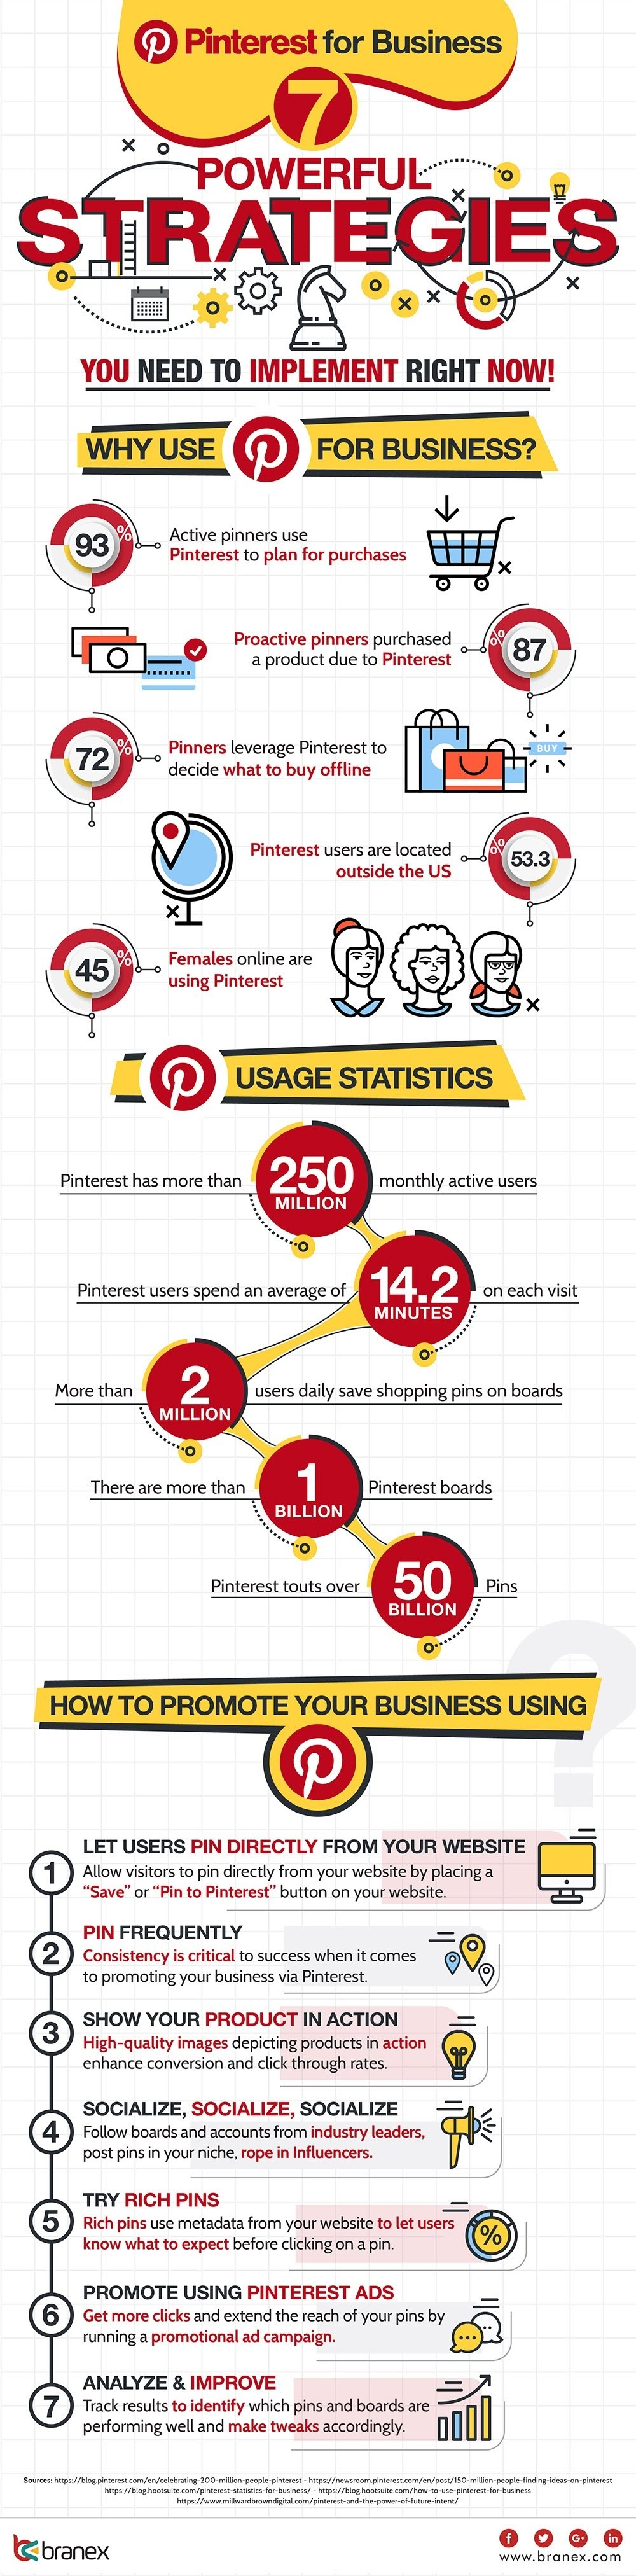 7 Powerful Pinterest Strategies to Implement Right Now [Infographic]